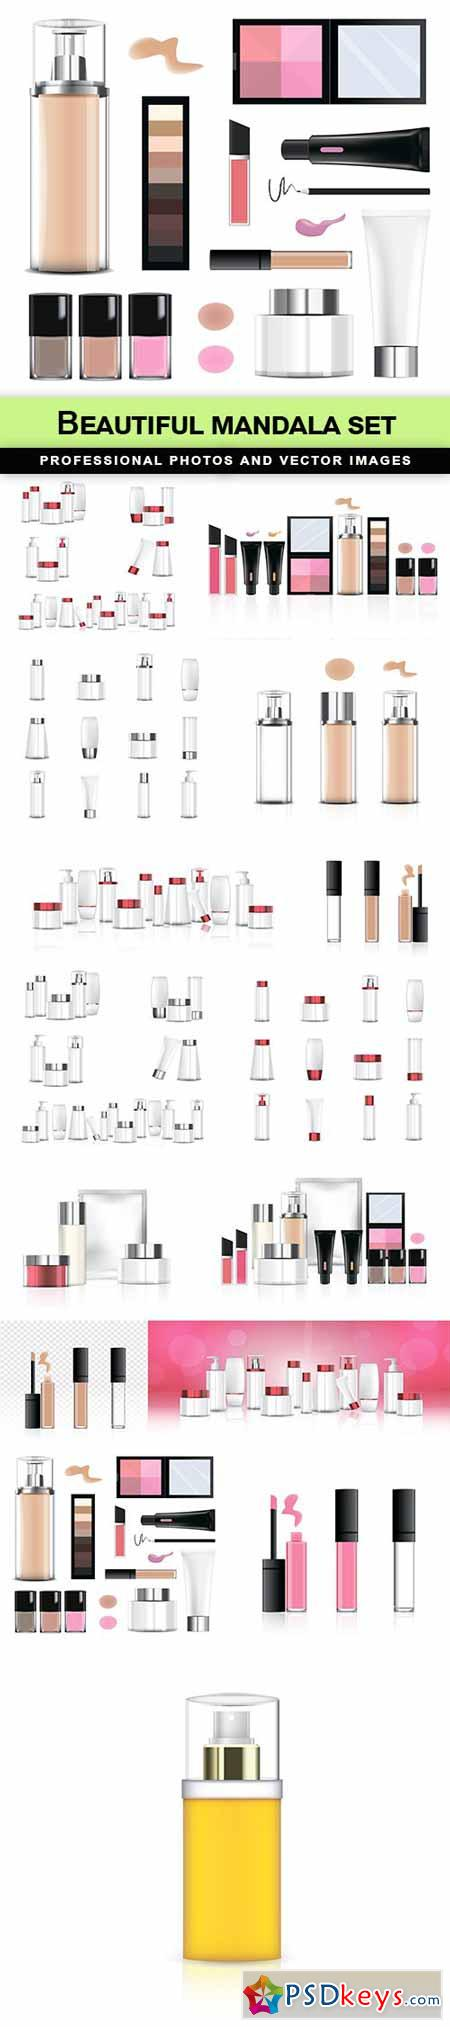 Beauty product package - 15 EPS